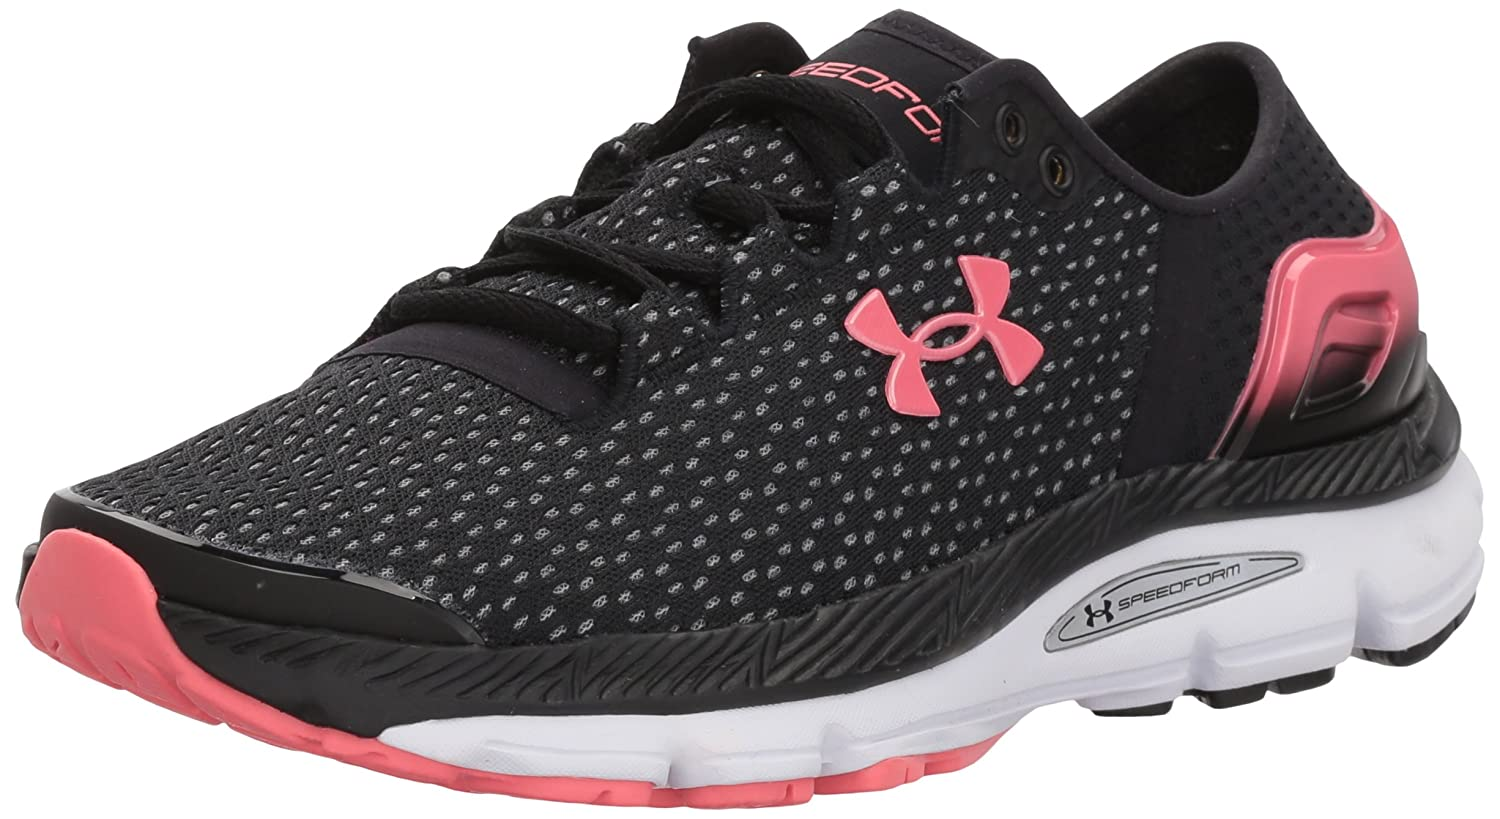 06ddcefe6563e2 Amazon.com  Under Armour Women s Speedform Intake 2 Running Shoe  Shoes